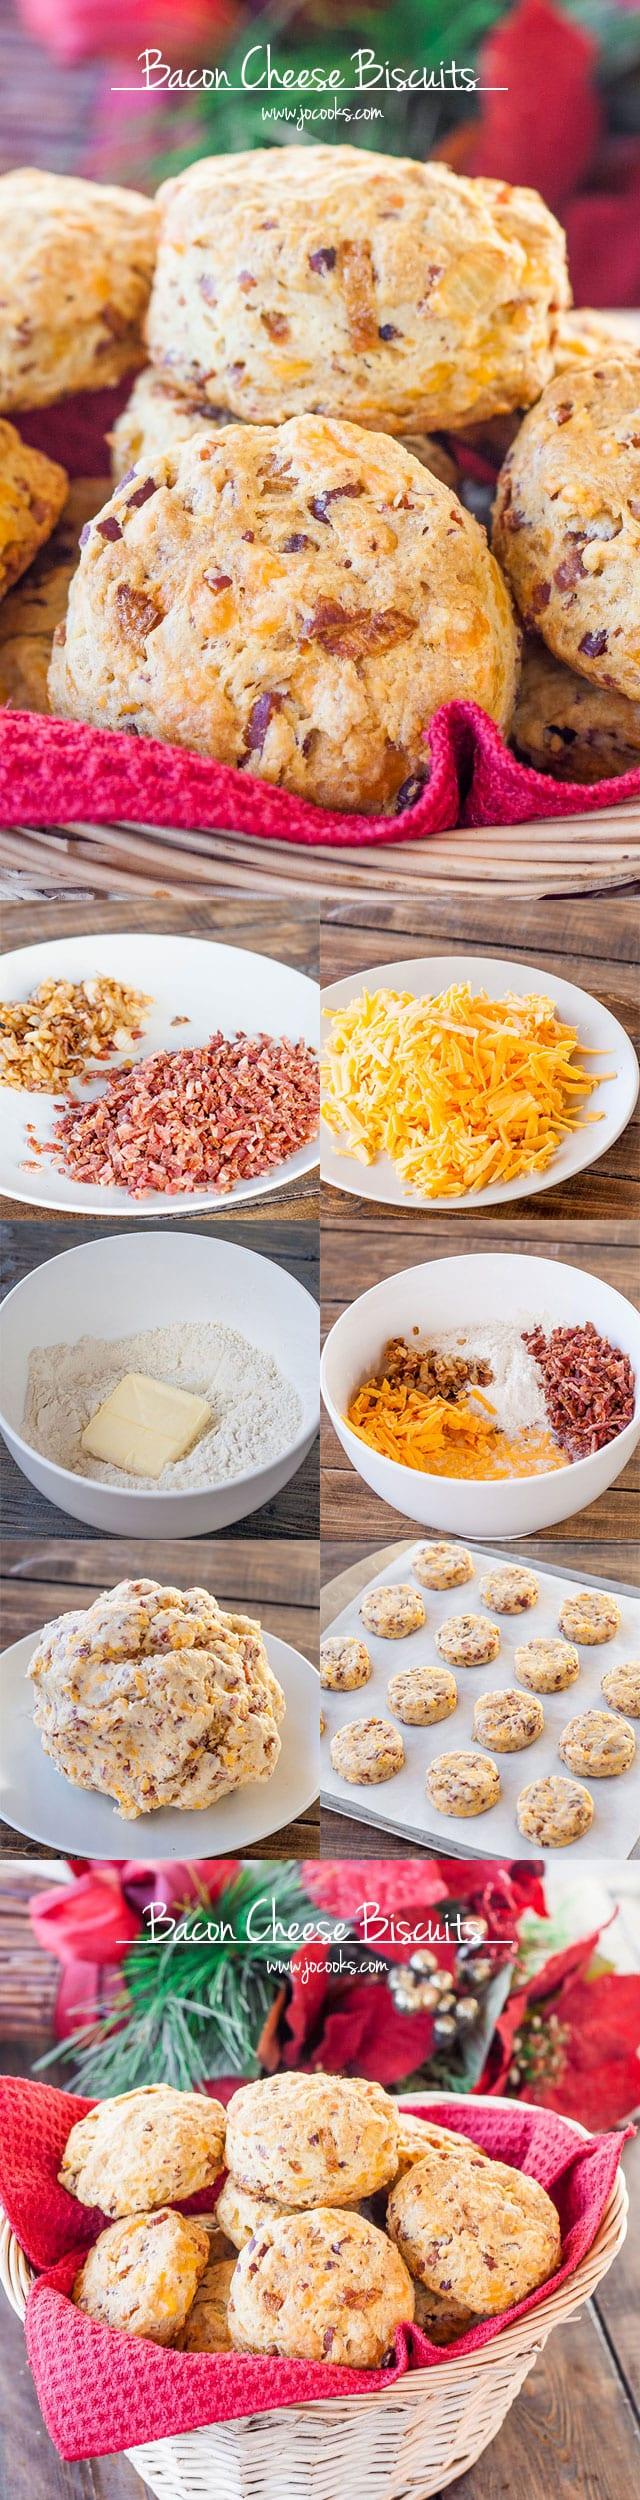 bacon-cheddar-biscuits-collage